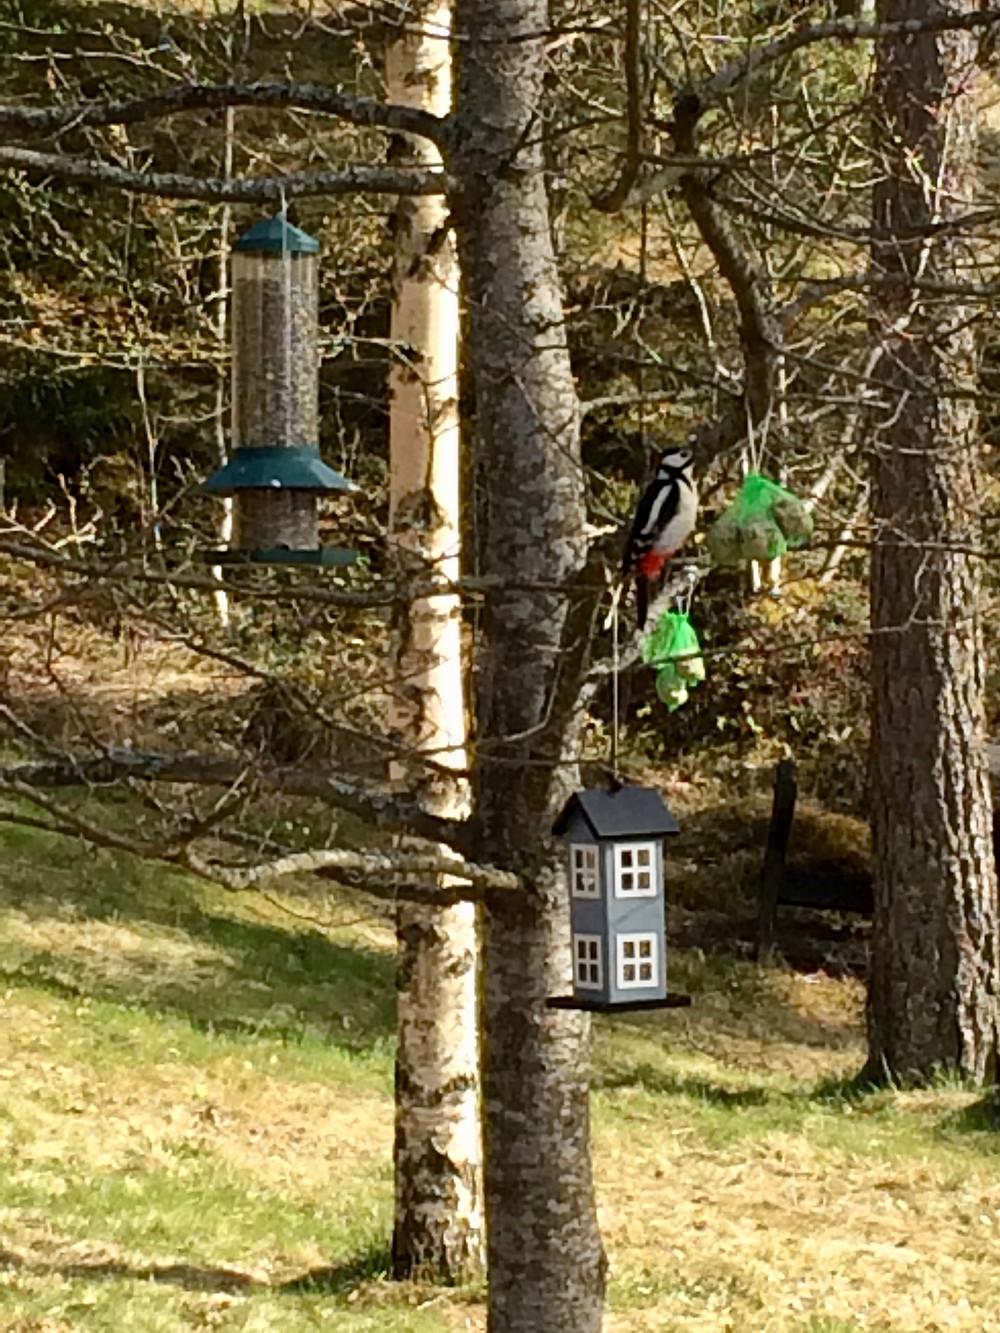 A woodpecker visiting the feeding station